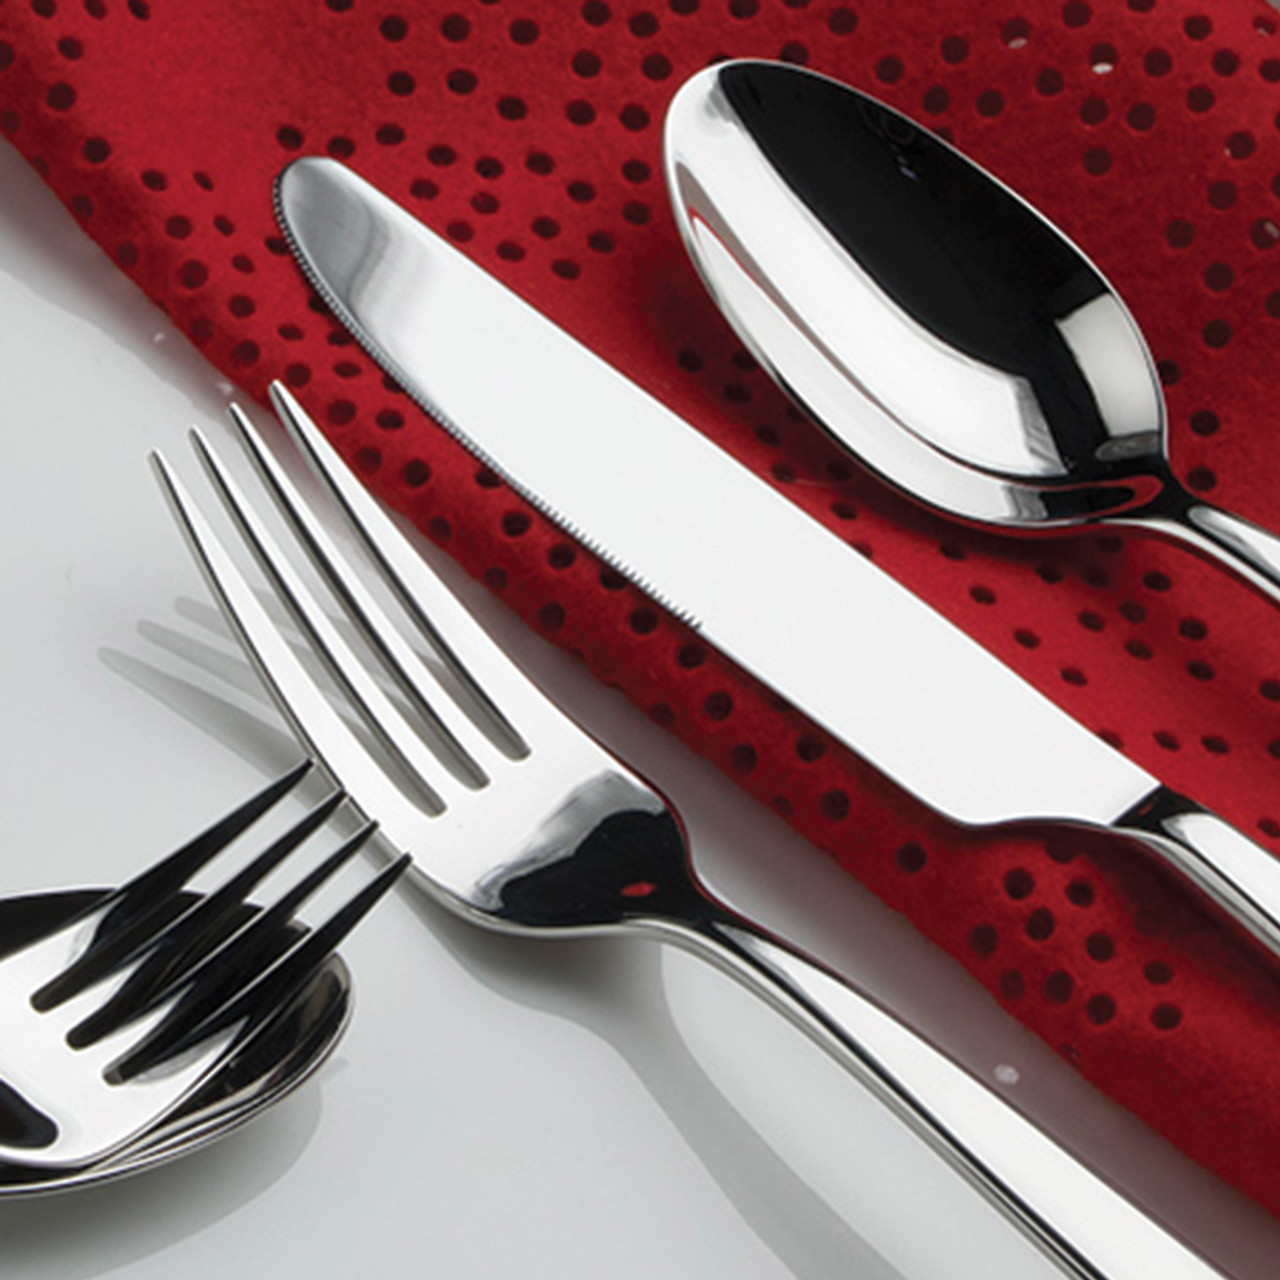 Resto flatware and cutlery